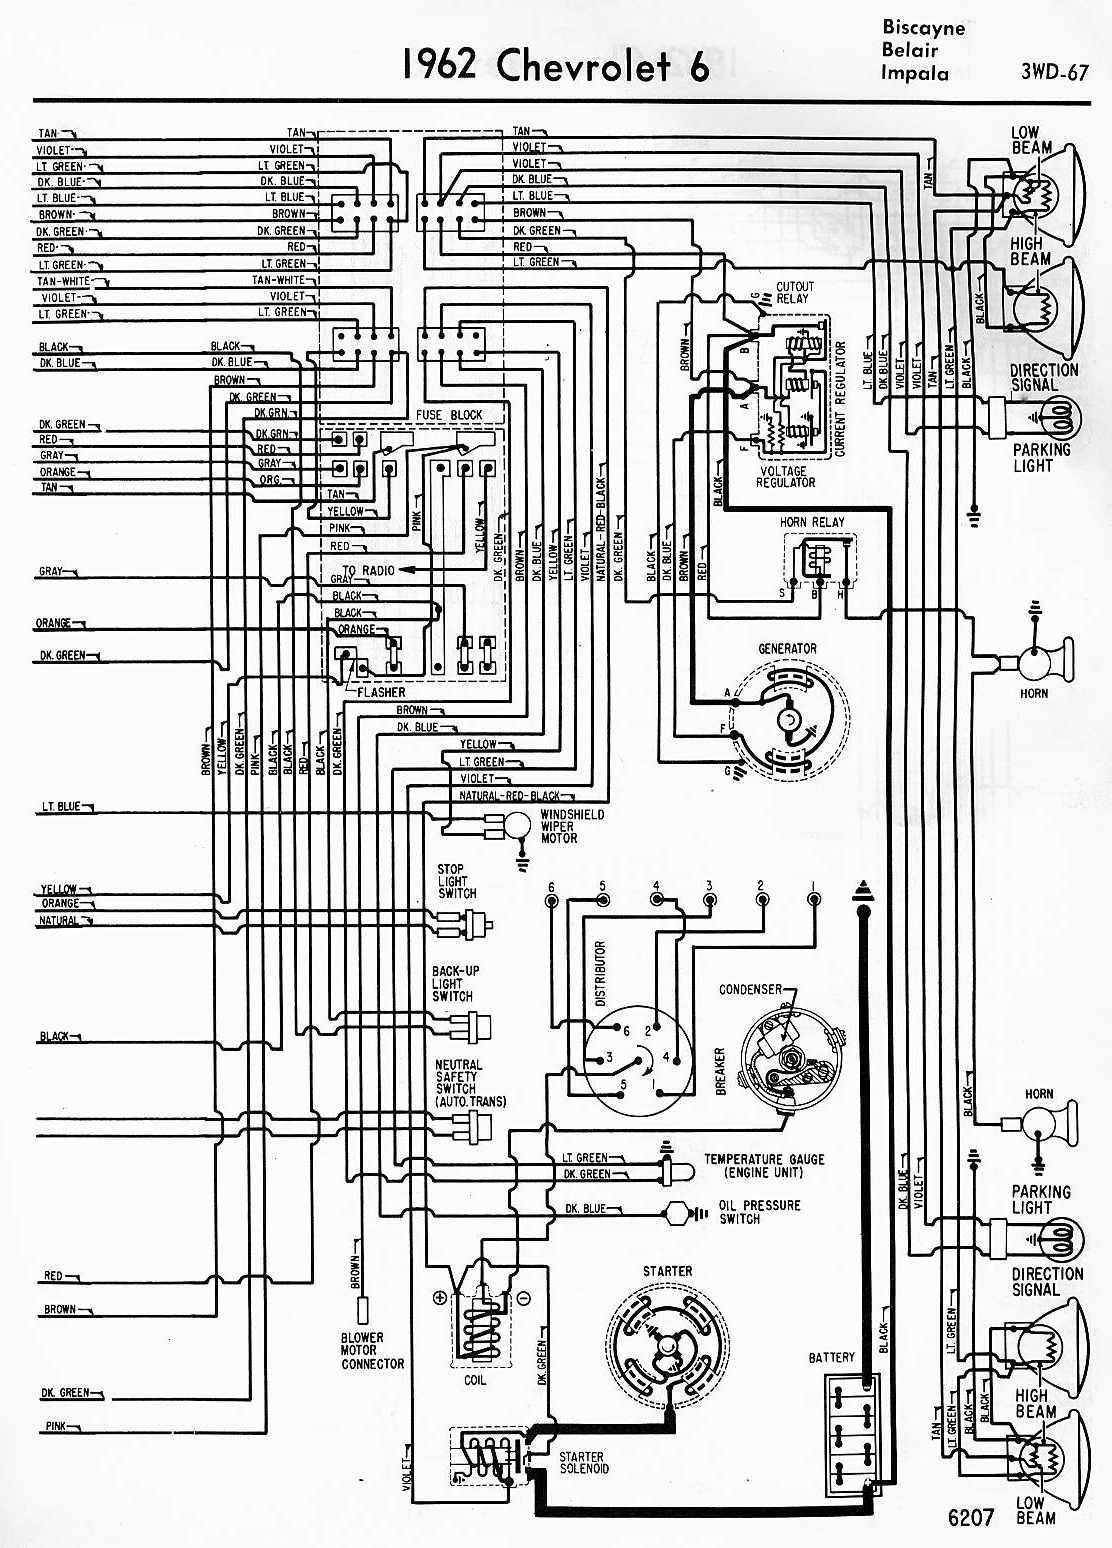 medium resolution of 1966 chevrolet impala wiring diagram free picture wiring diagram rh 1 16 jacobwinterstein com 2002 impala